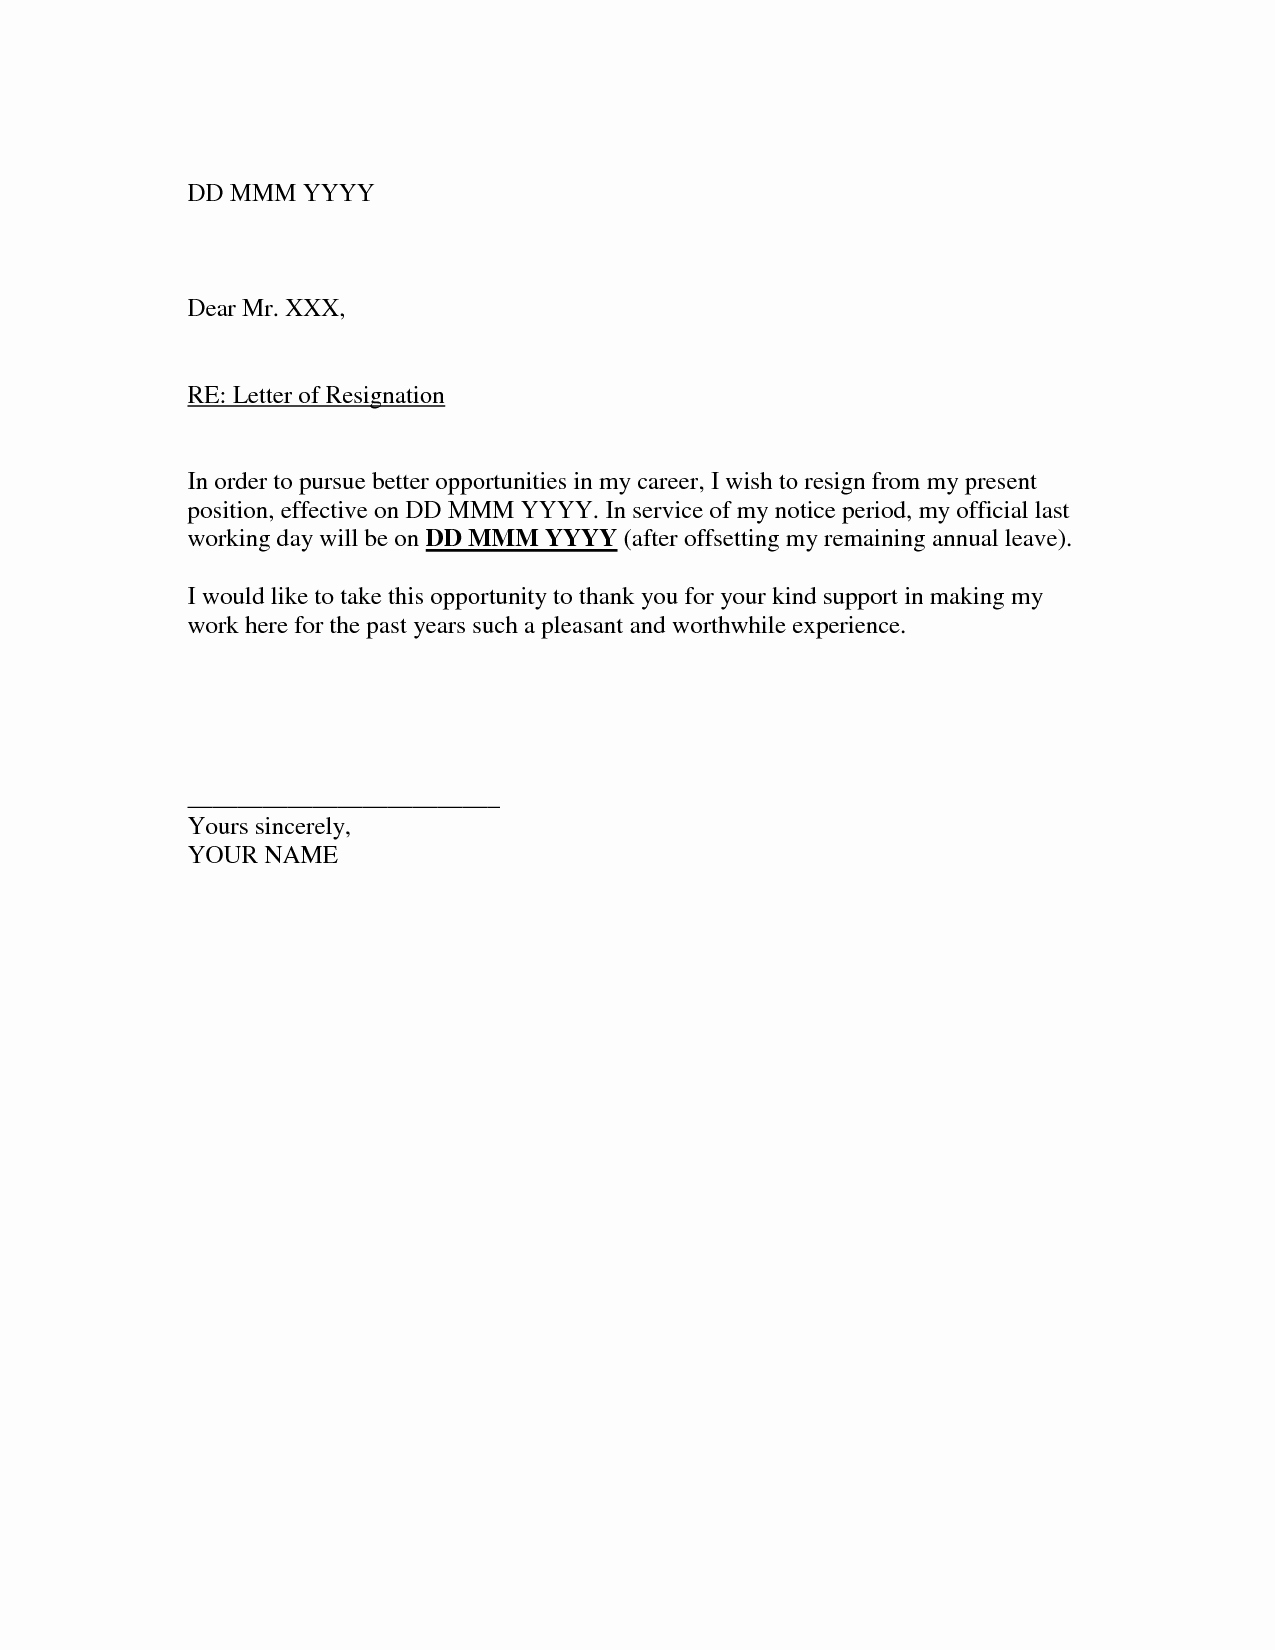 Letter Of Resignation Template Free Inspirational Printable Sample Letter Of Resignation form